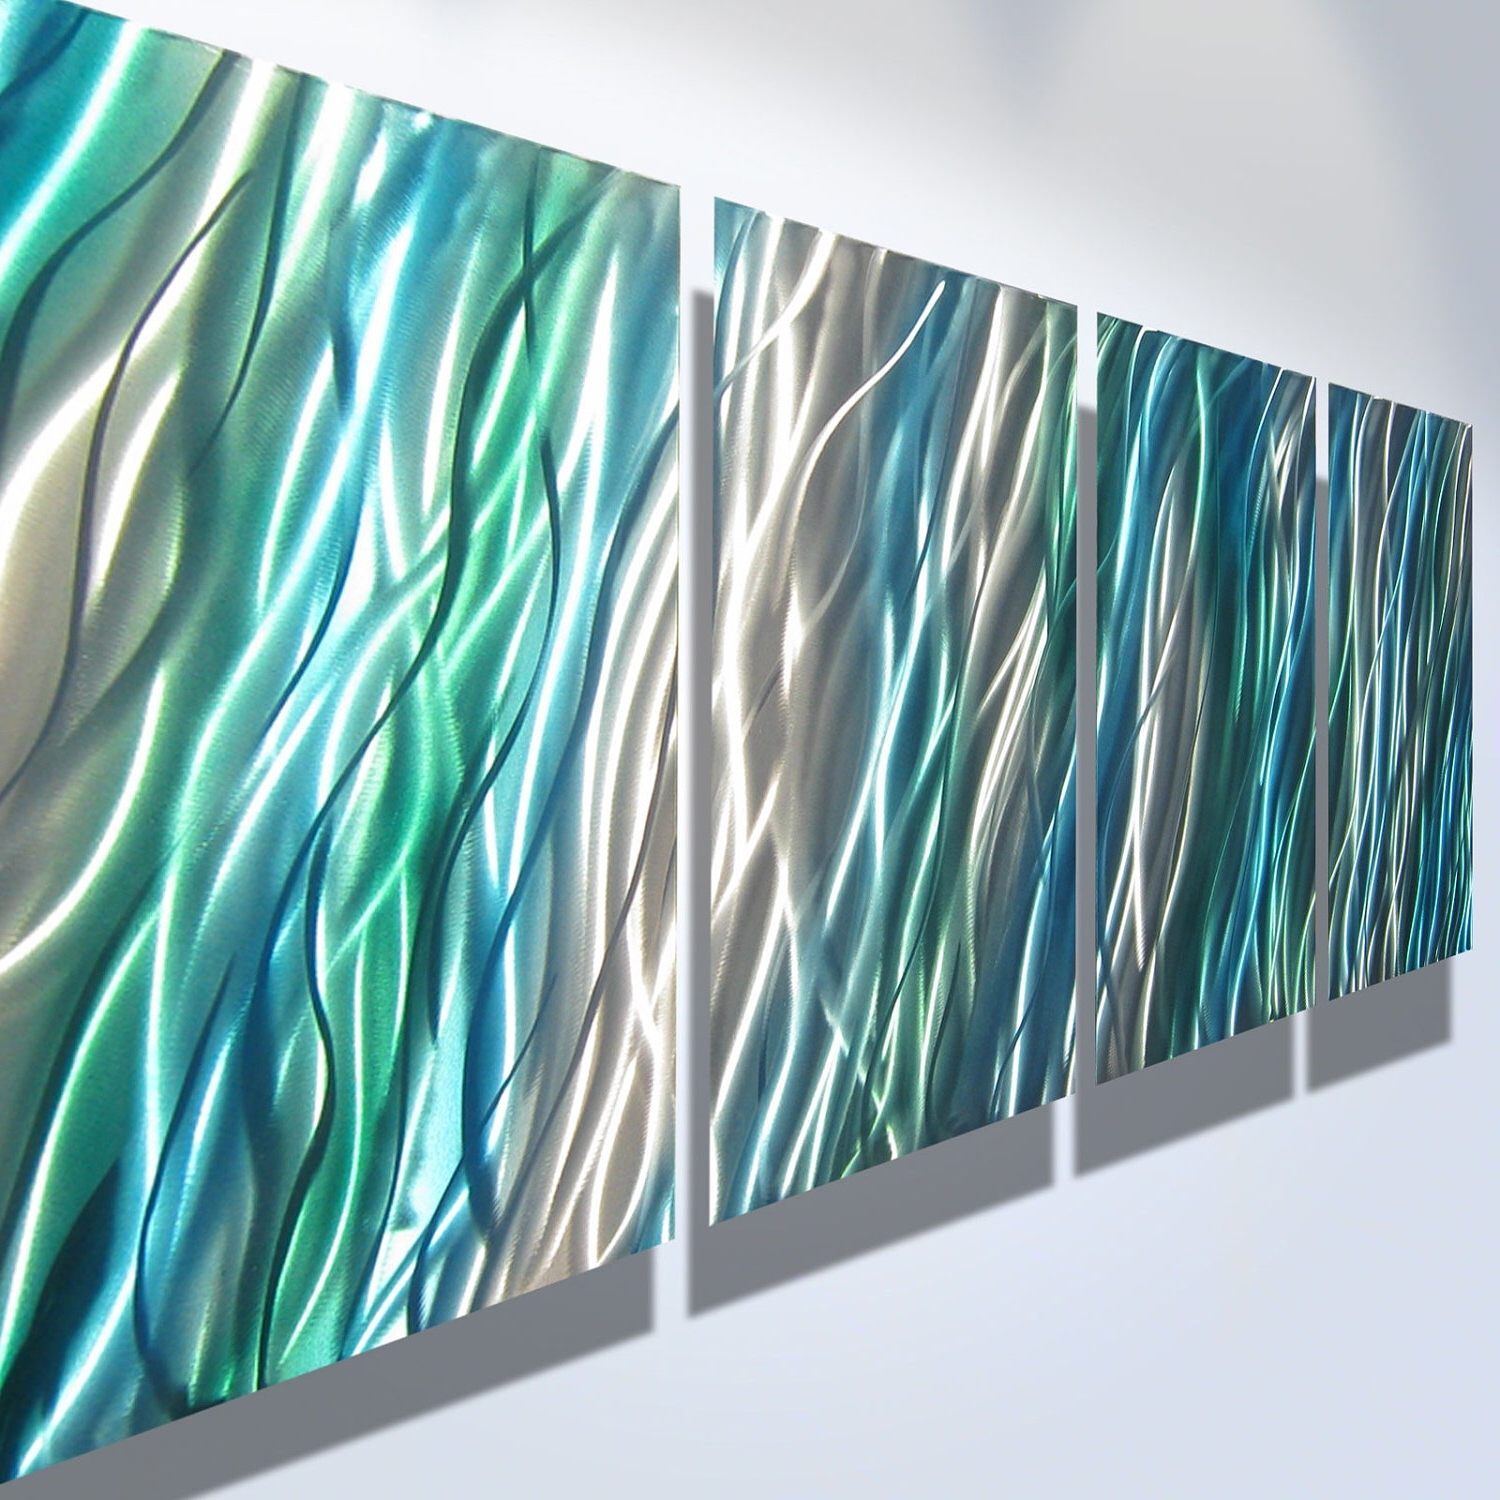 Turquoise Metal Wall Art – Edu9841 #fb127E4667A3 Within Popular Seaside Metal Wall Art (View 15 of 15)